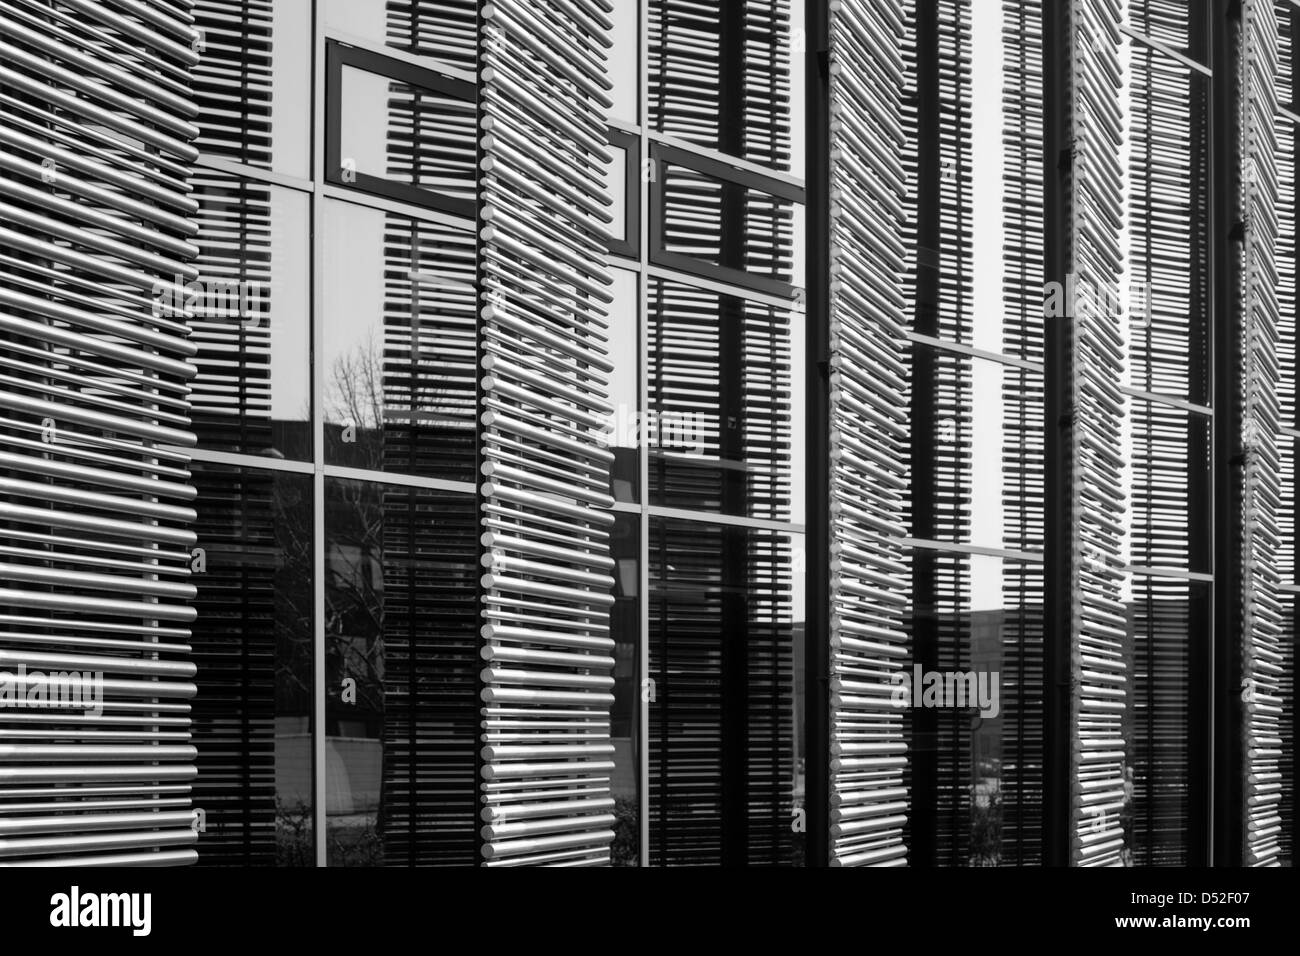 Cavendish Laboratory department of physics Cambridge University - Stock Image